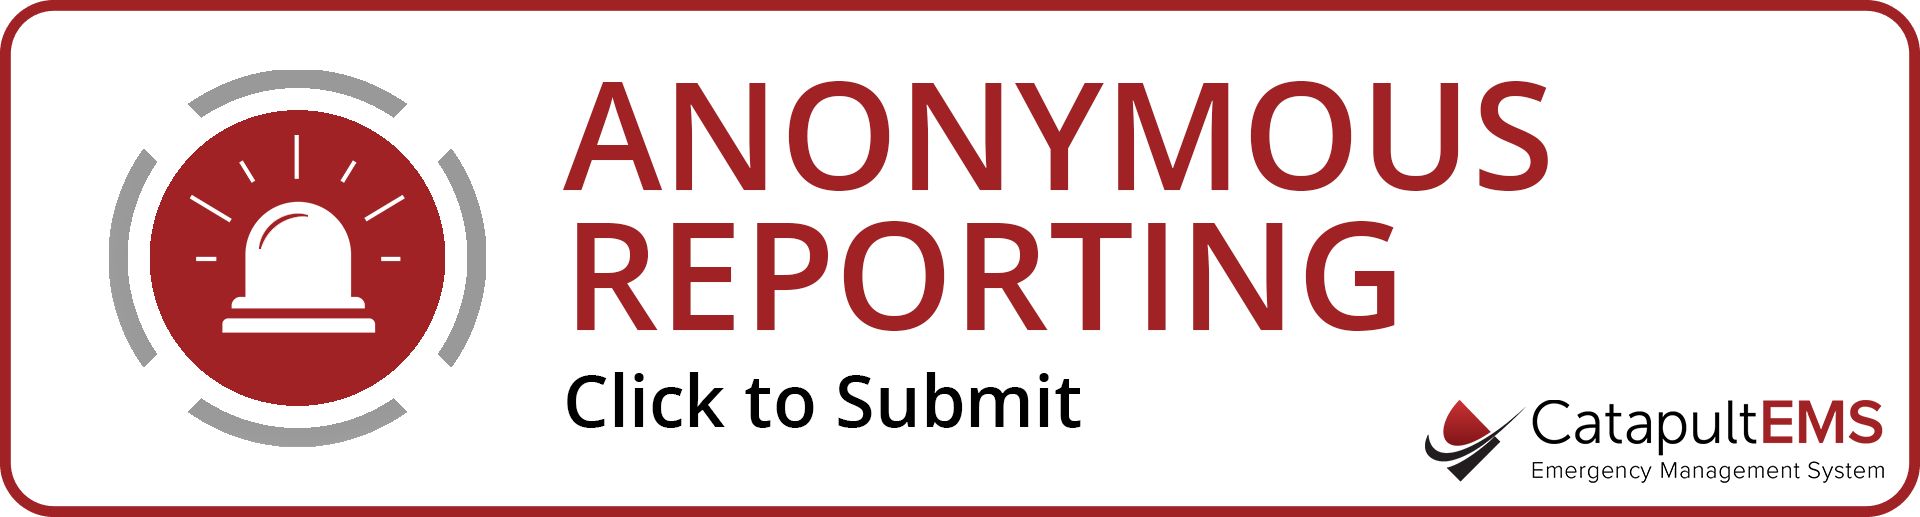 Anonymous Reporting. Click to submit.